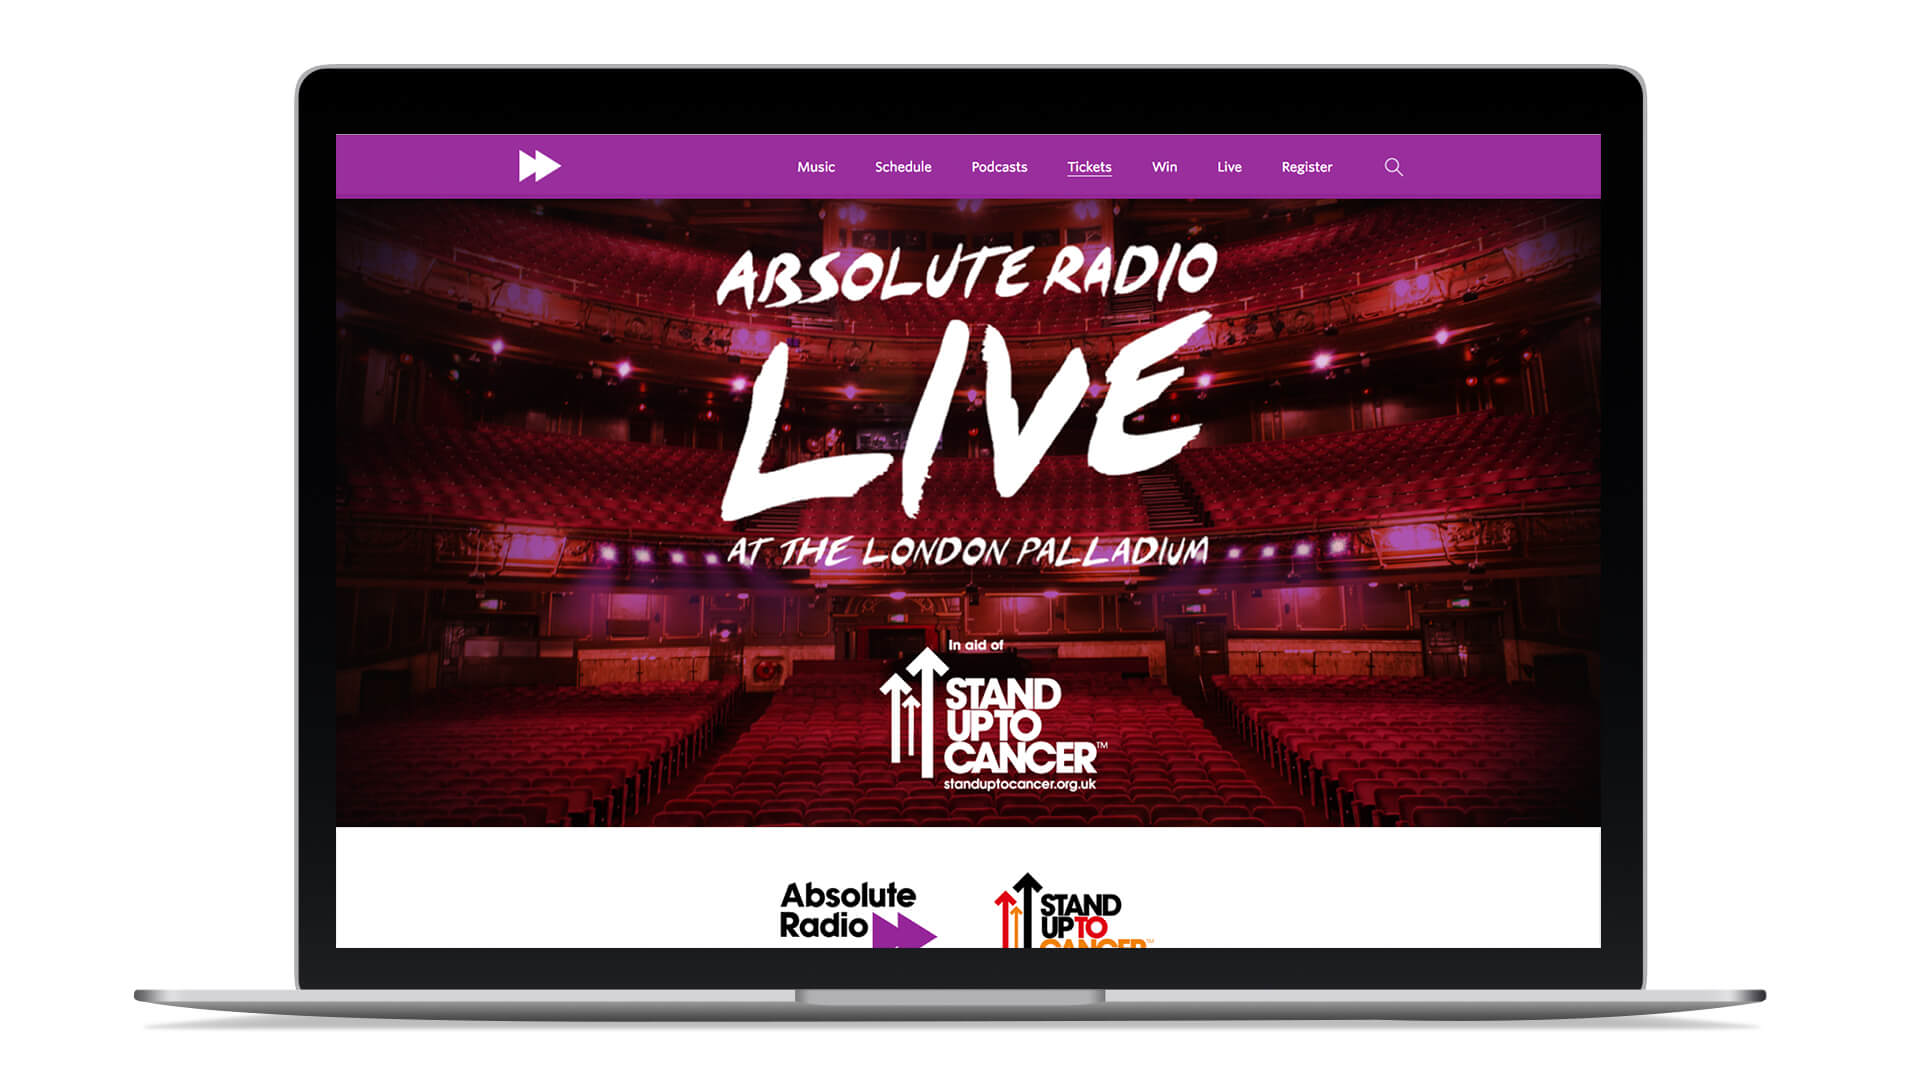 Absolute radio brand identity web site design home page